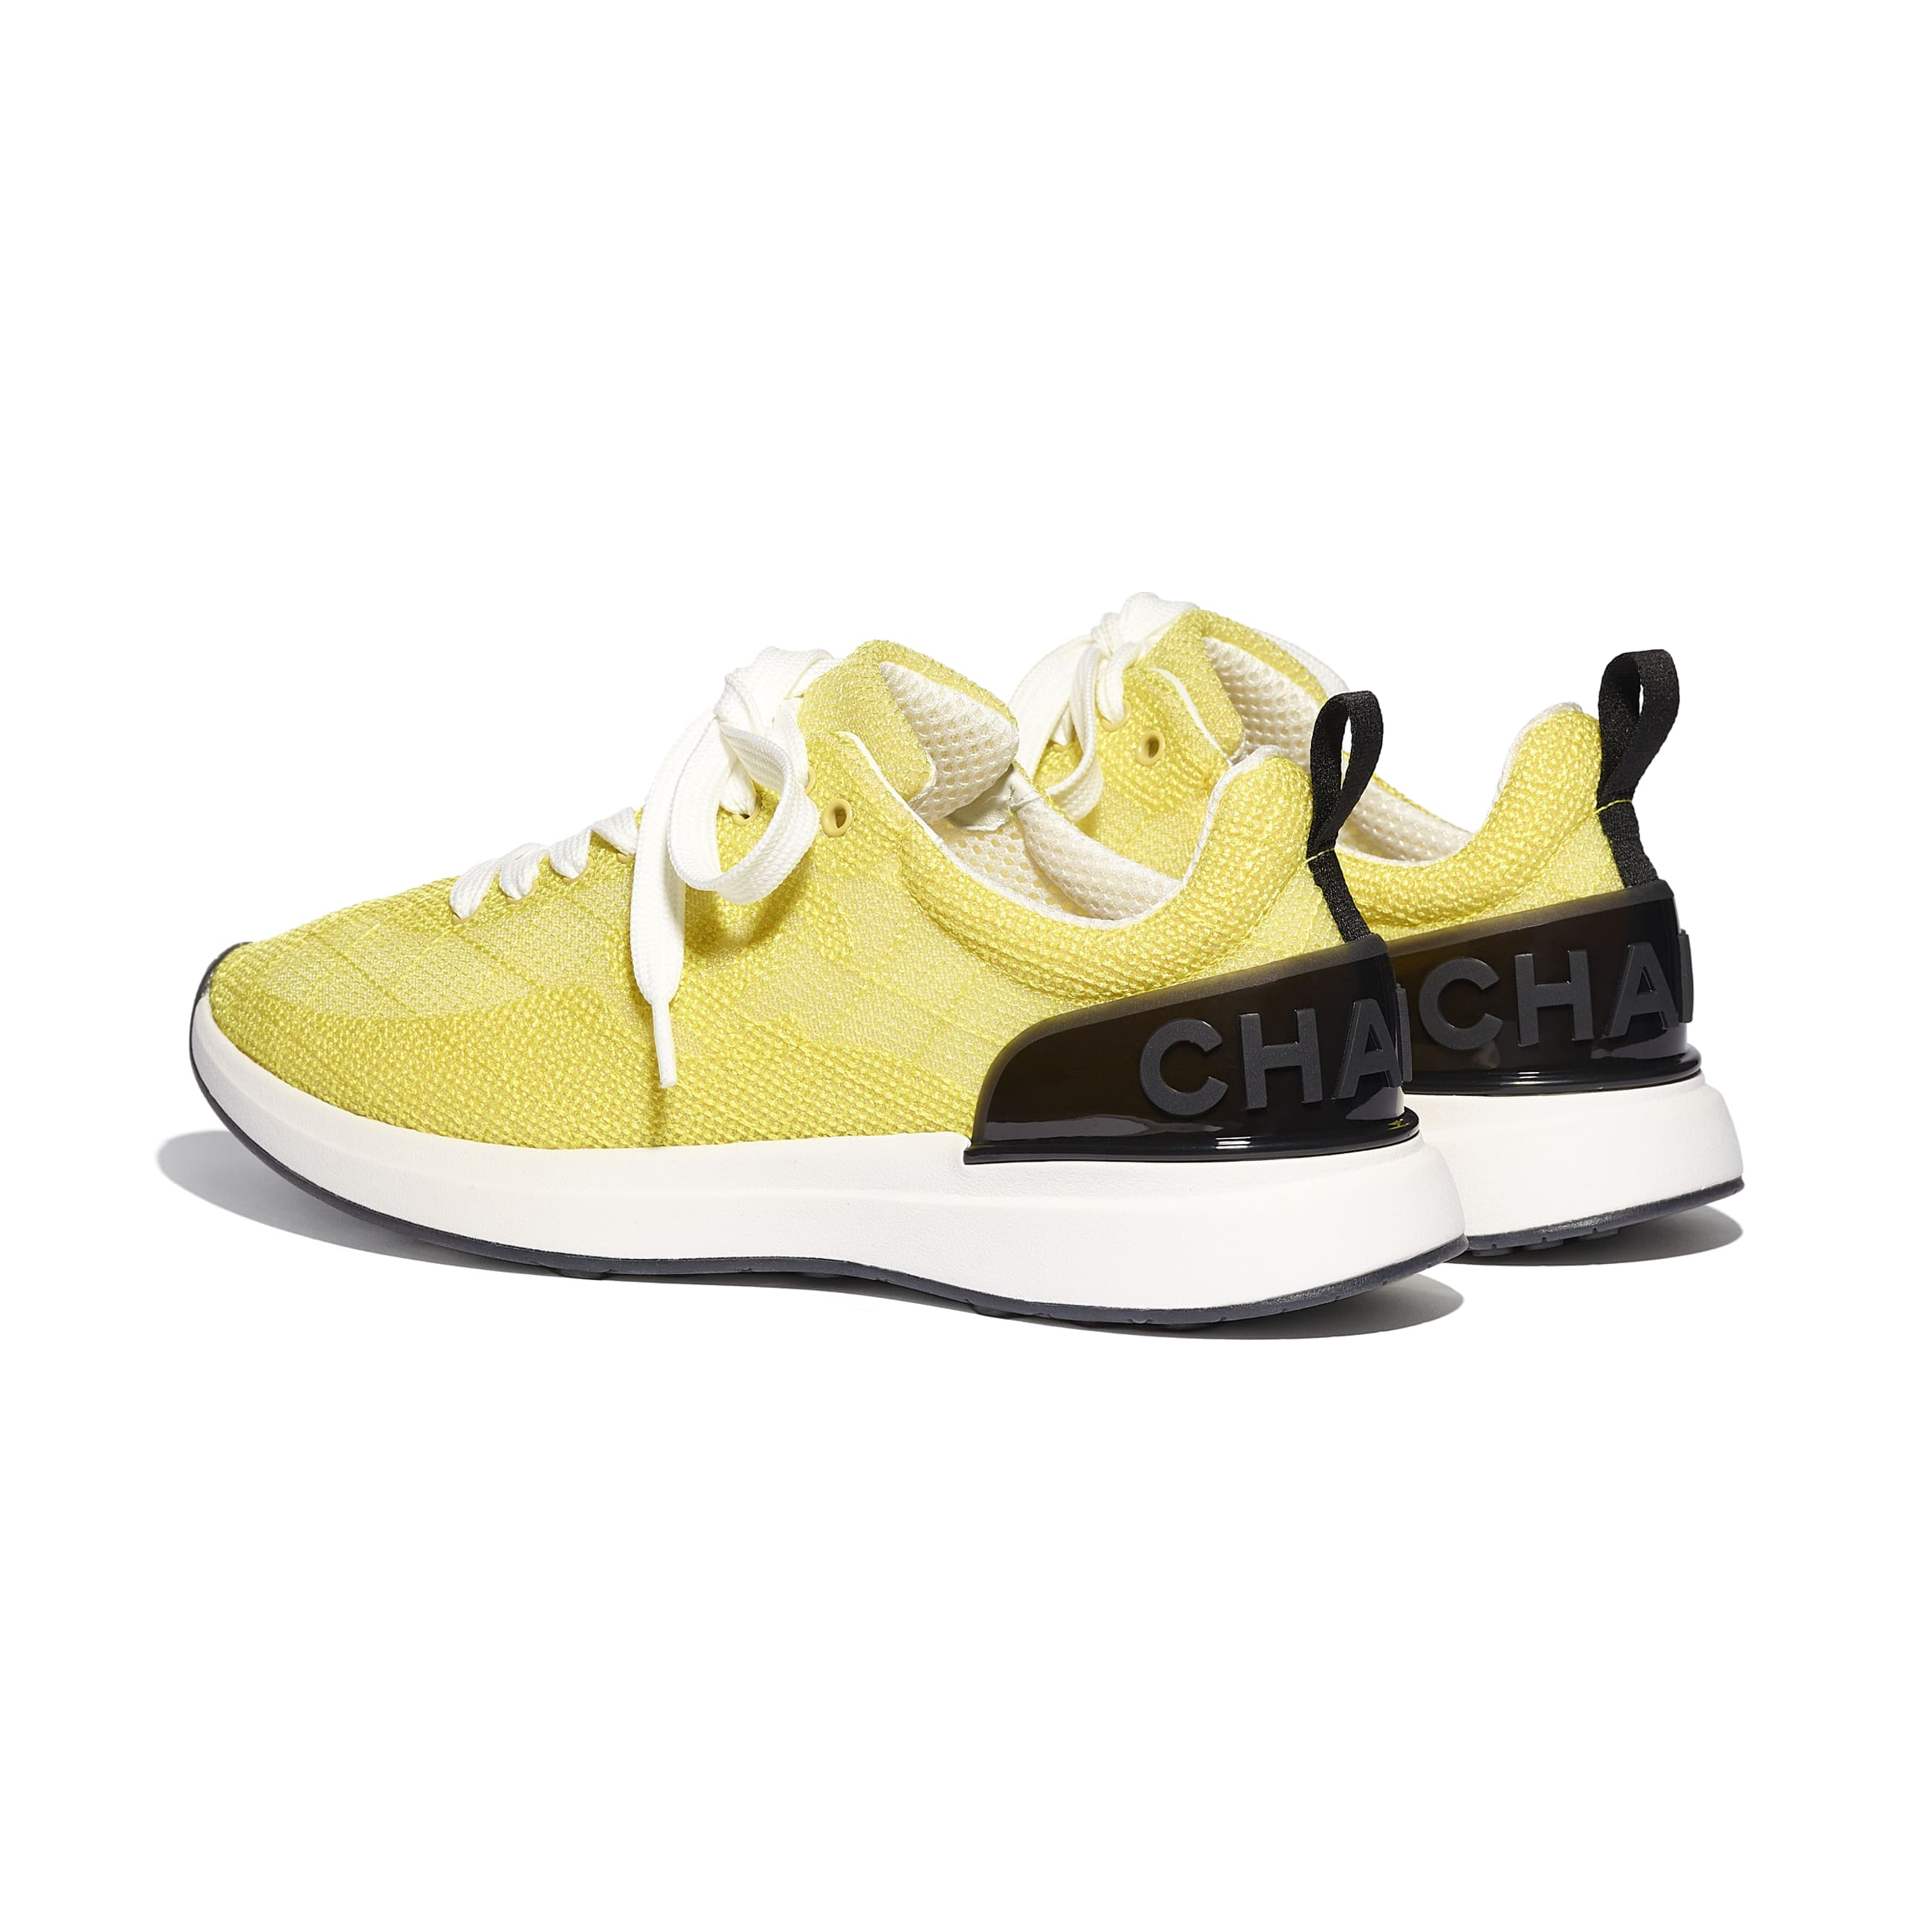 Trainers - Yellow - Embroidered Mesh - CHANEL - Other view - see standard sized version